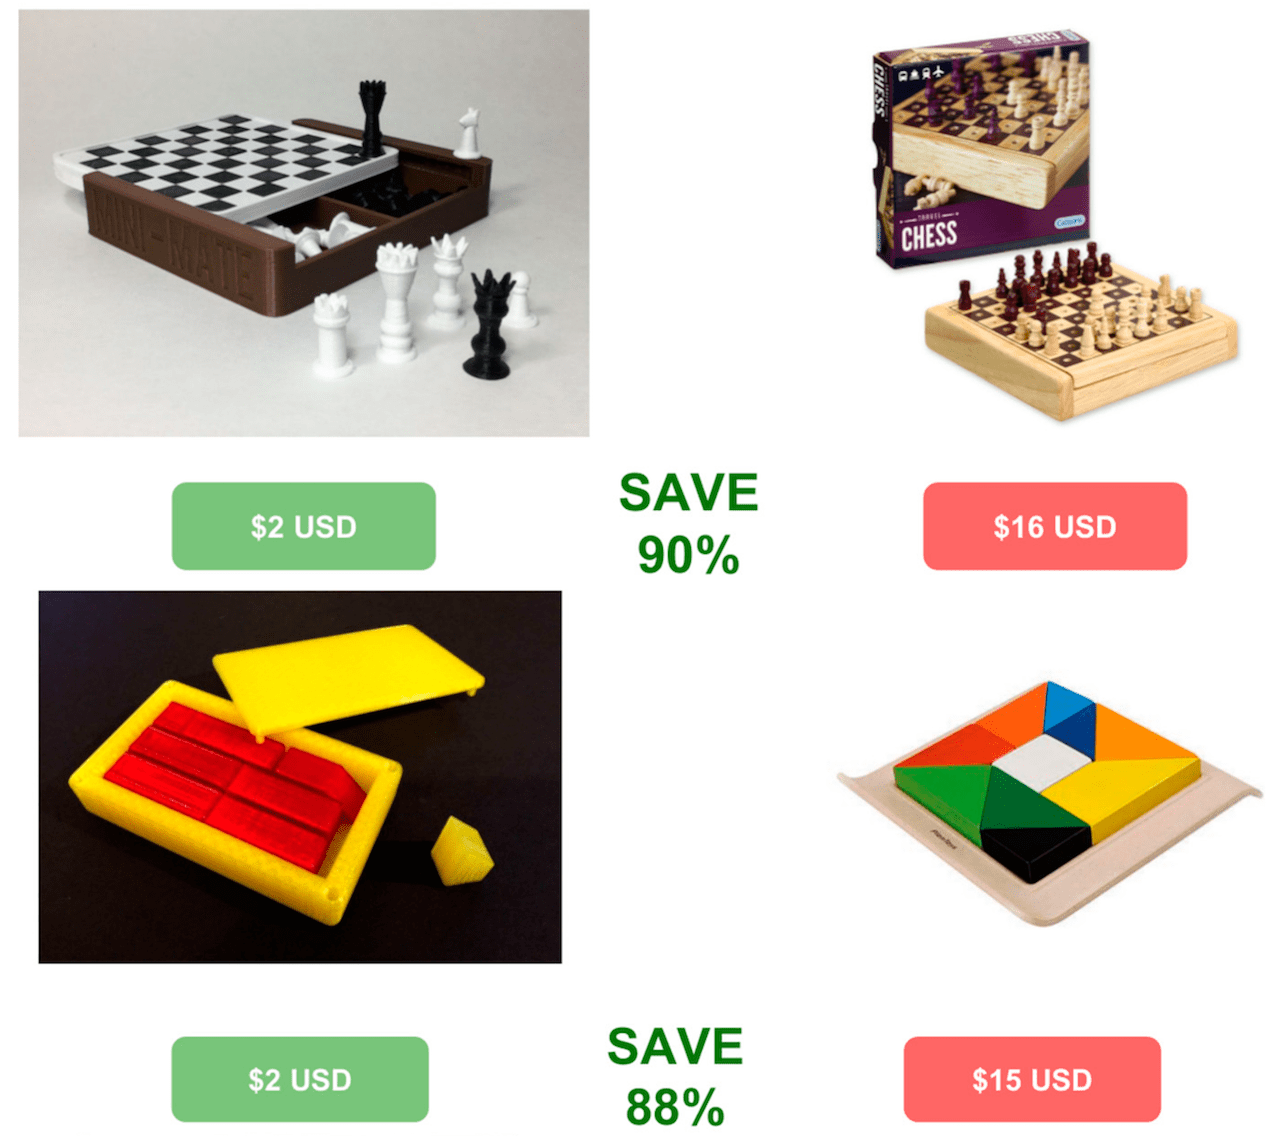 Cost comparison between store-bought and 3D printed toys